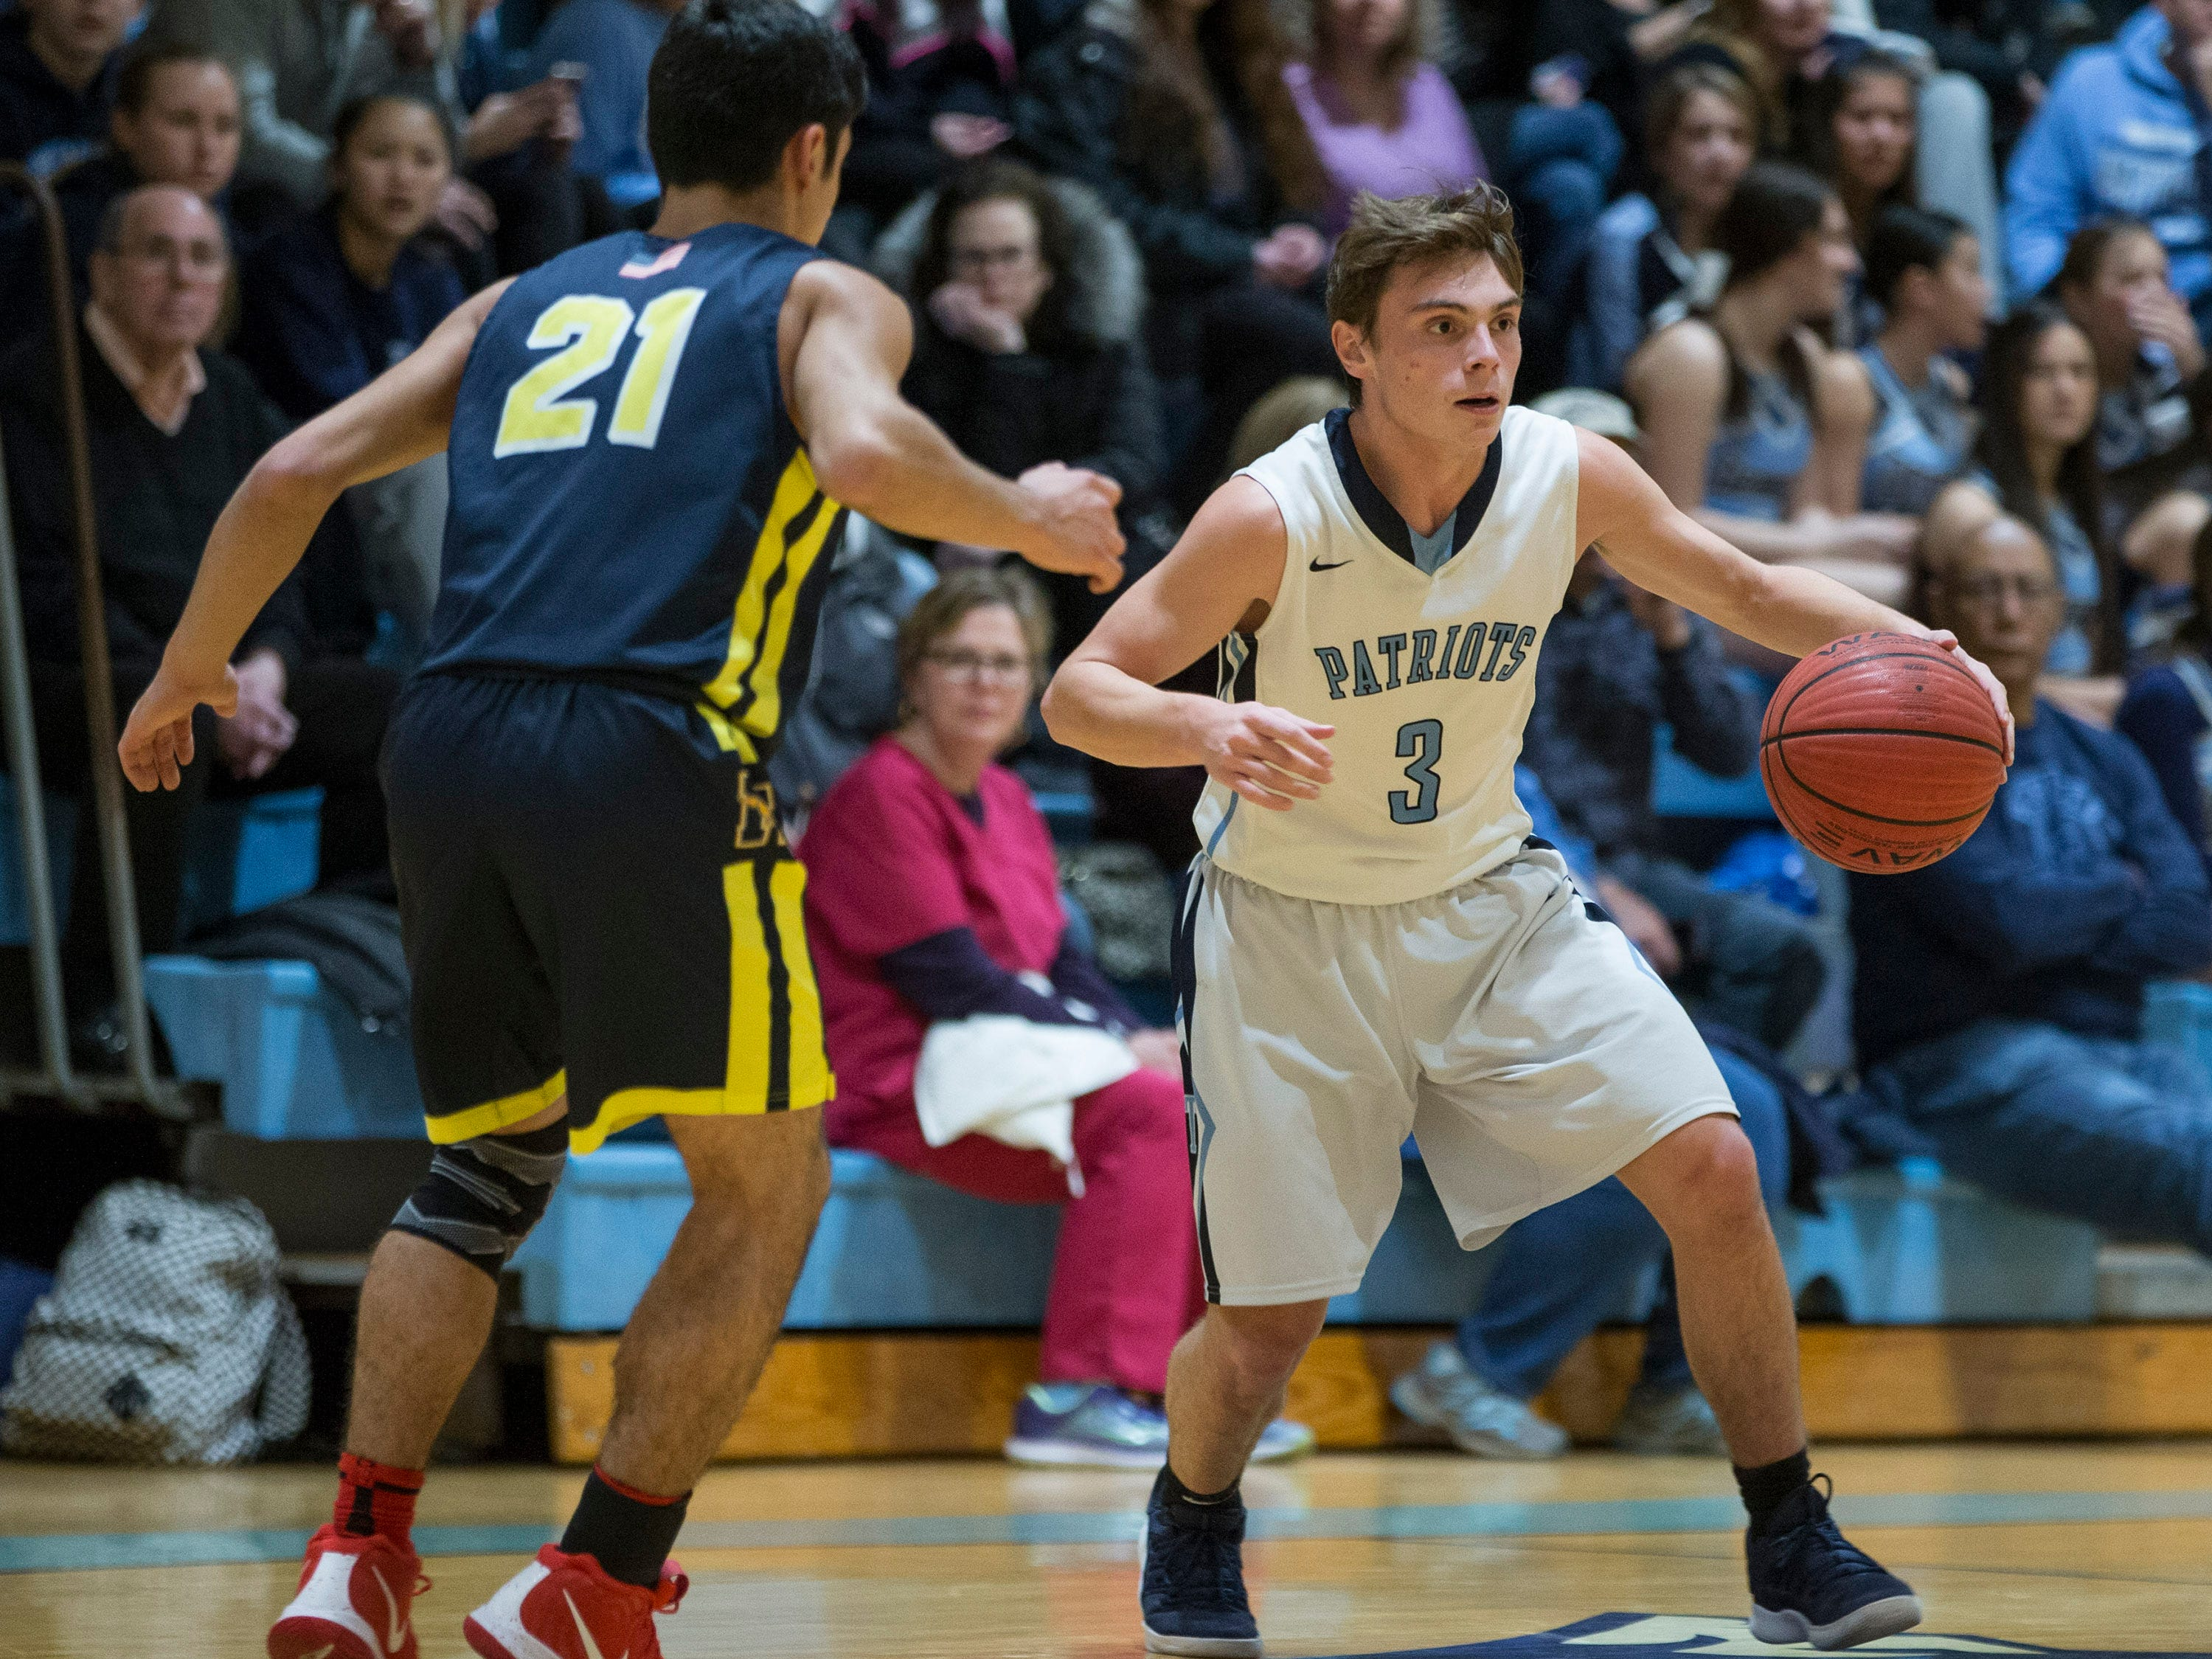 Marlboro vs Freehold Township basketball. 